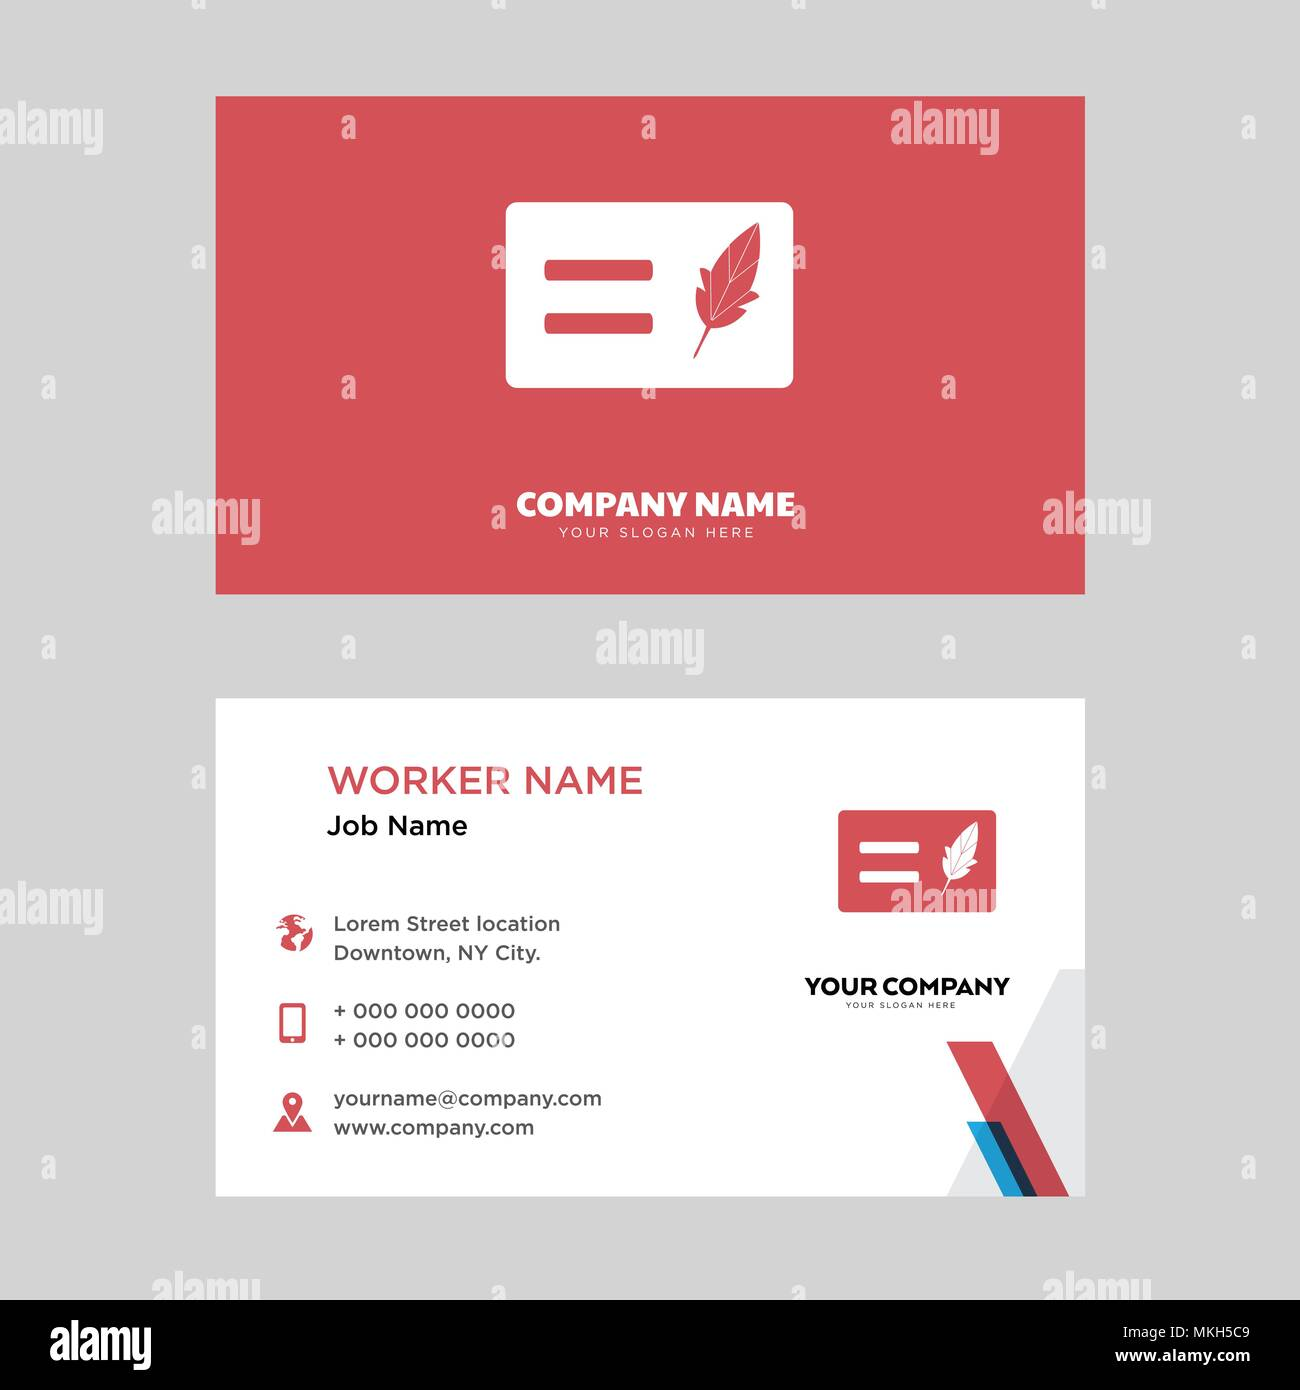 Papyrus business card design template, Visiting for your company ...